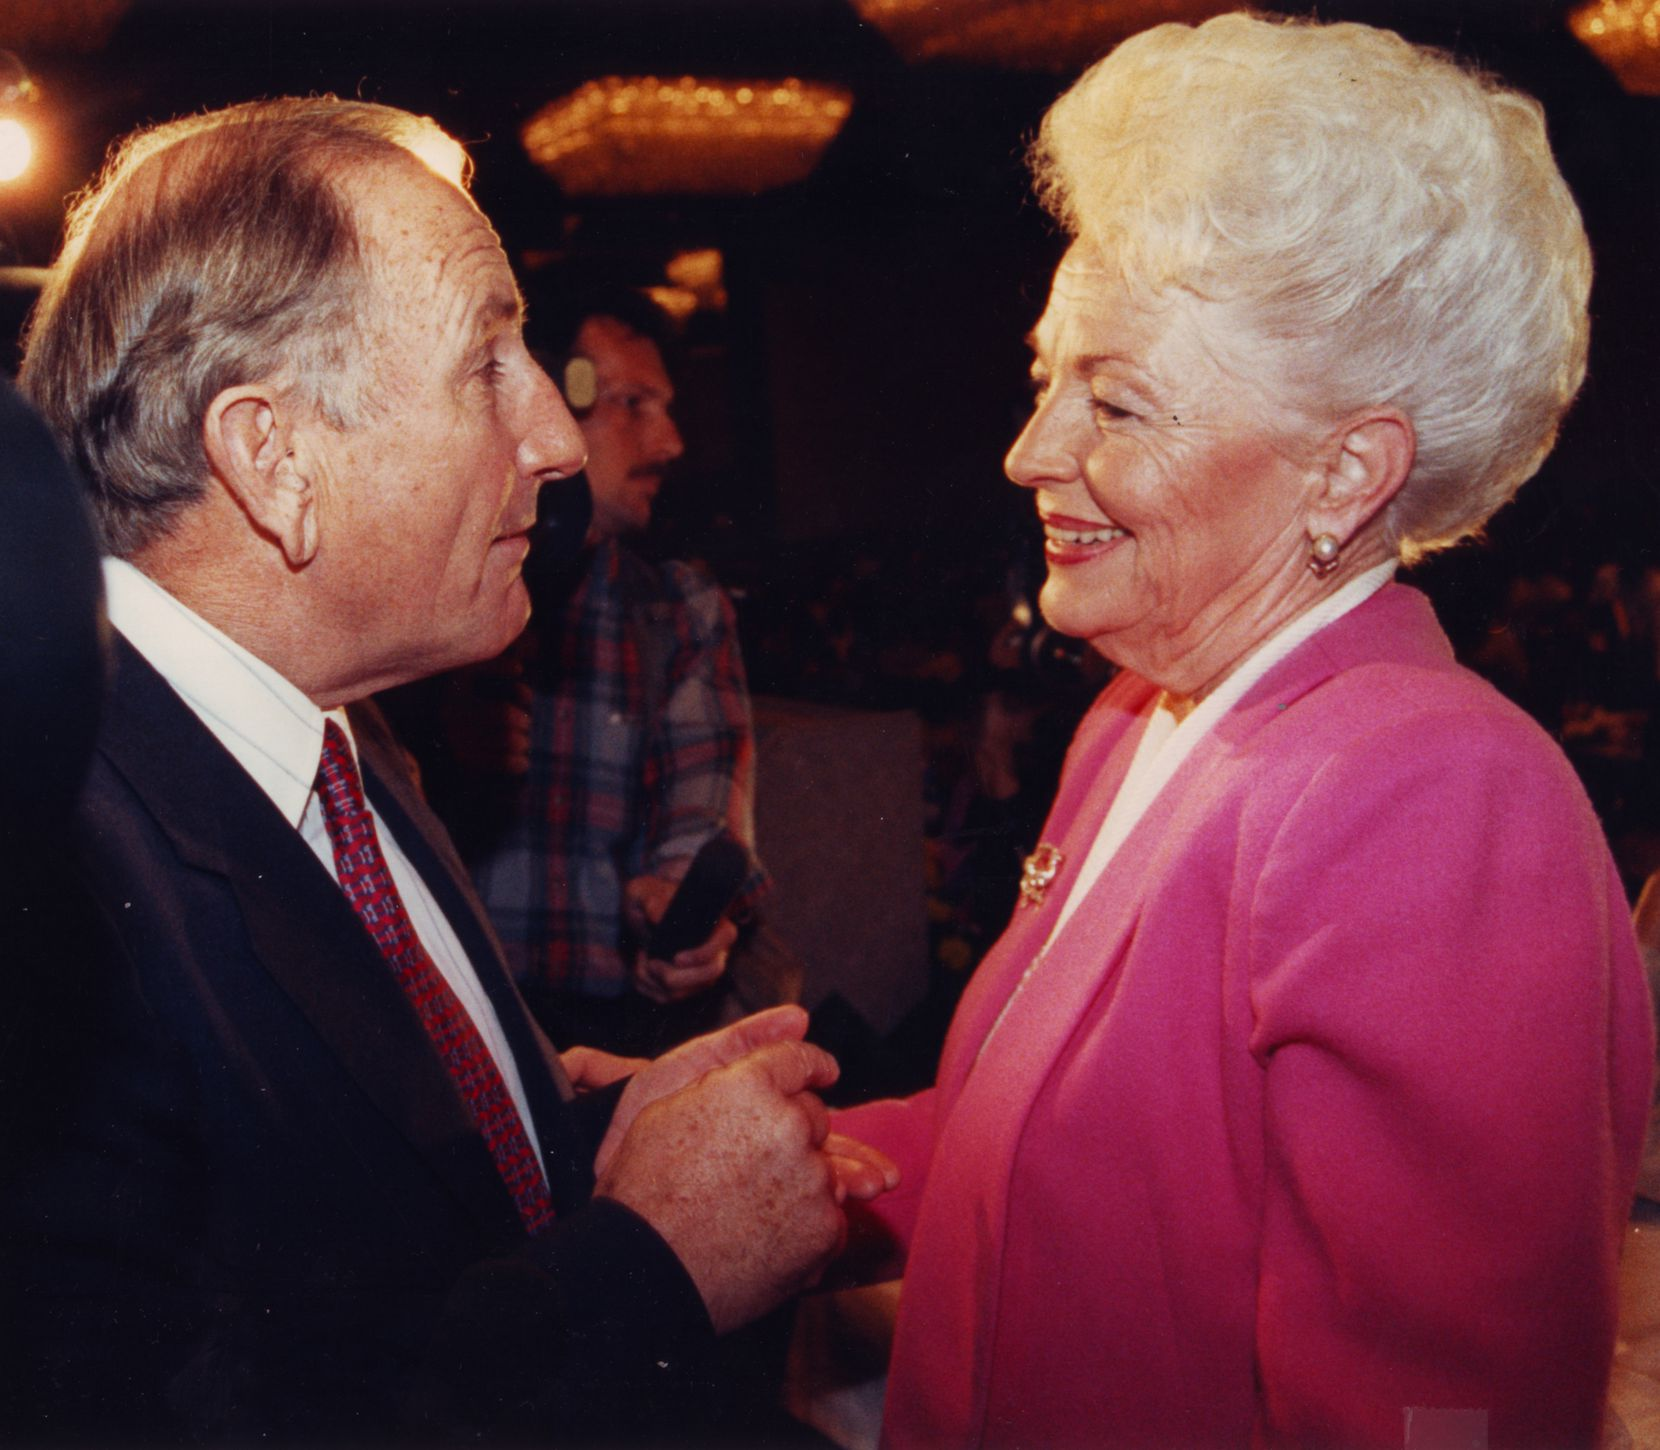 Although things appeared to be amicable here, at one point in their 1990 battle for the Texas governor's seat, Republican Clayton Williams told Democrat Ann Richards that she was a liar and refused to shake her hand. Critical missteps cost Williams the race.